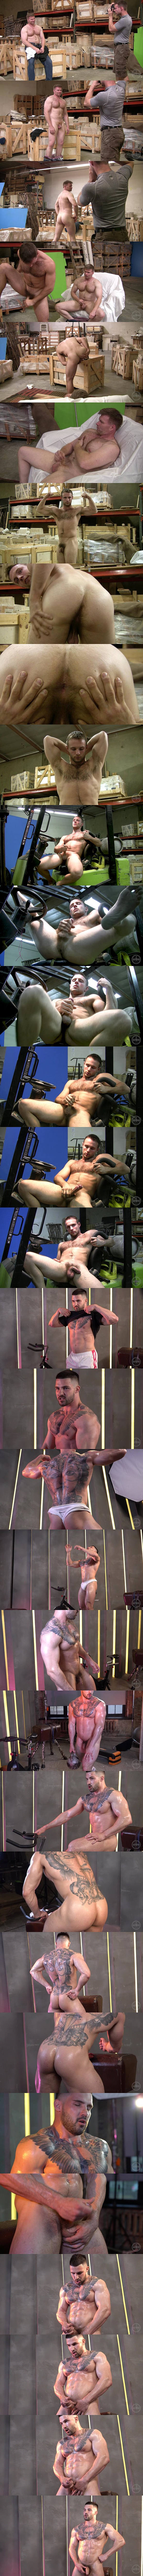 Theguysite - muscle daddy Dakota Philips, sexy hairy jock Joey and rugged handsome bodybuilder Tim strip down and pose their muscle bodies before they jerk off 02